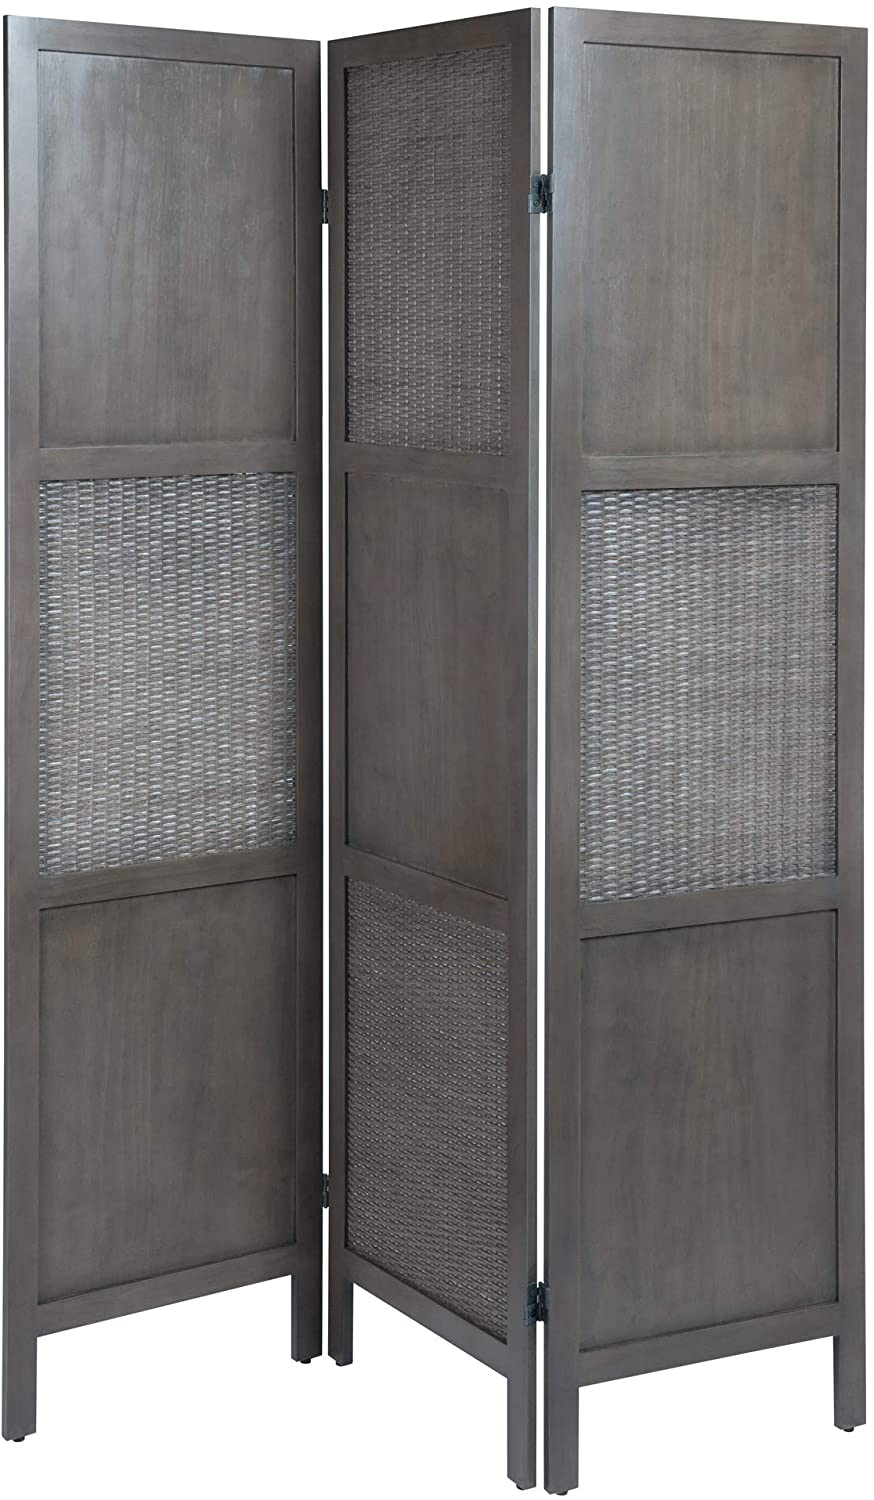 Ramie Folding Screen, Oyster Gray - Pot Racks Plus